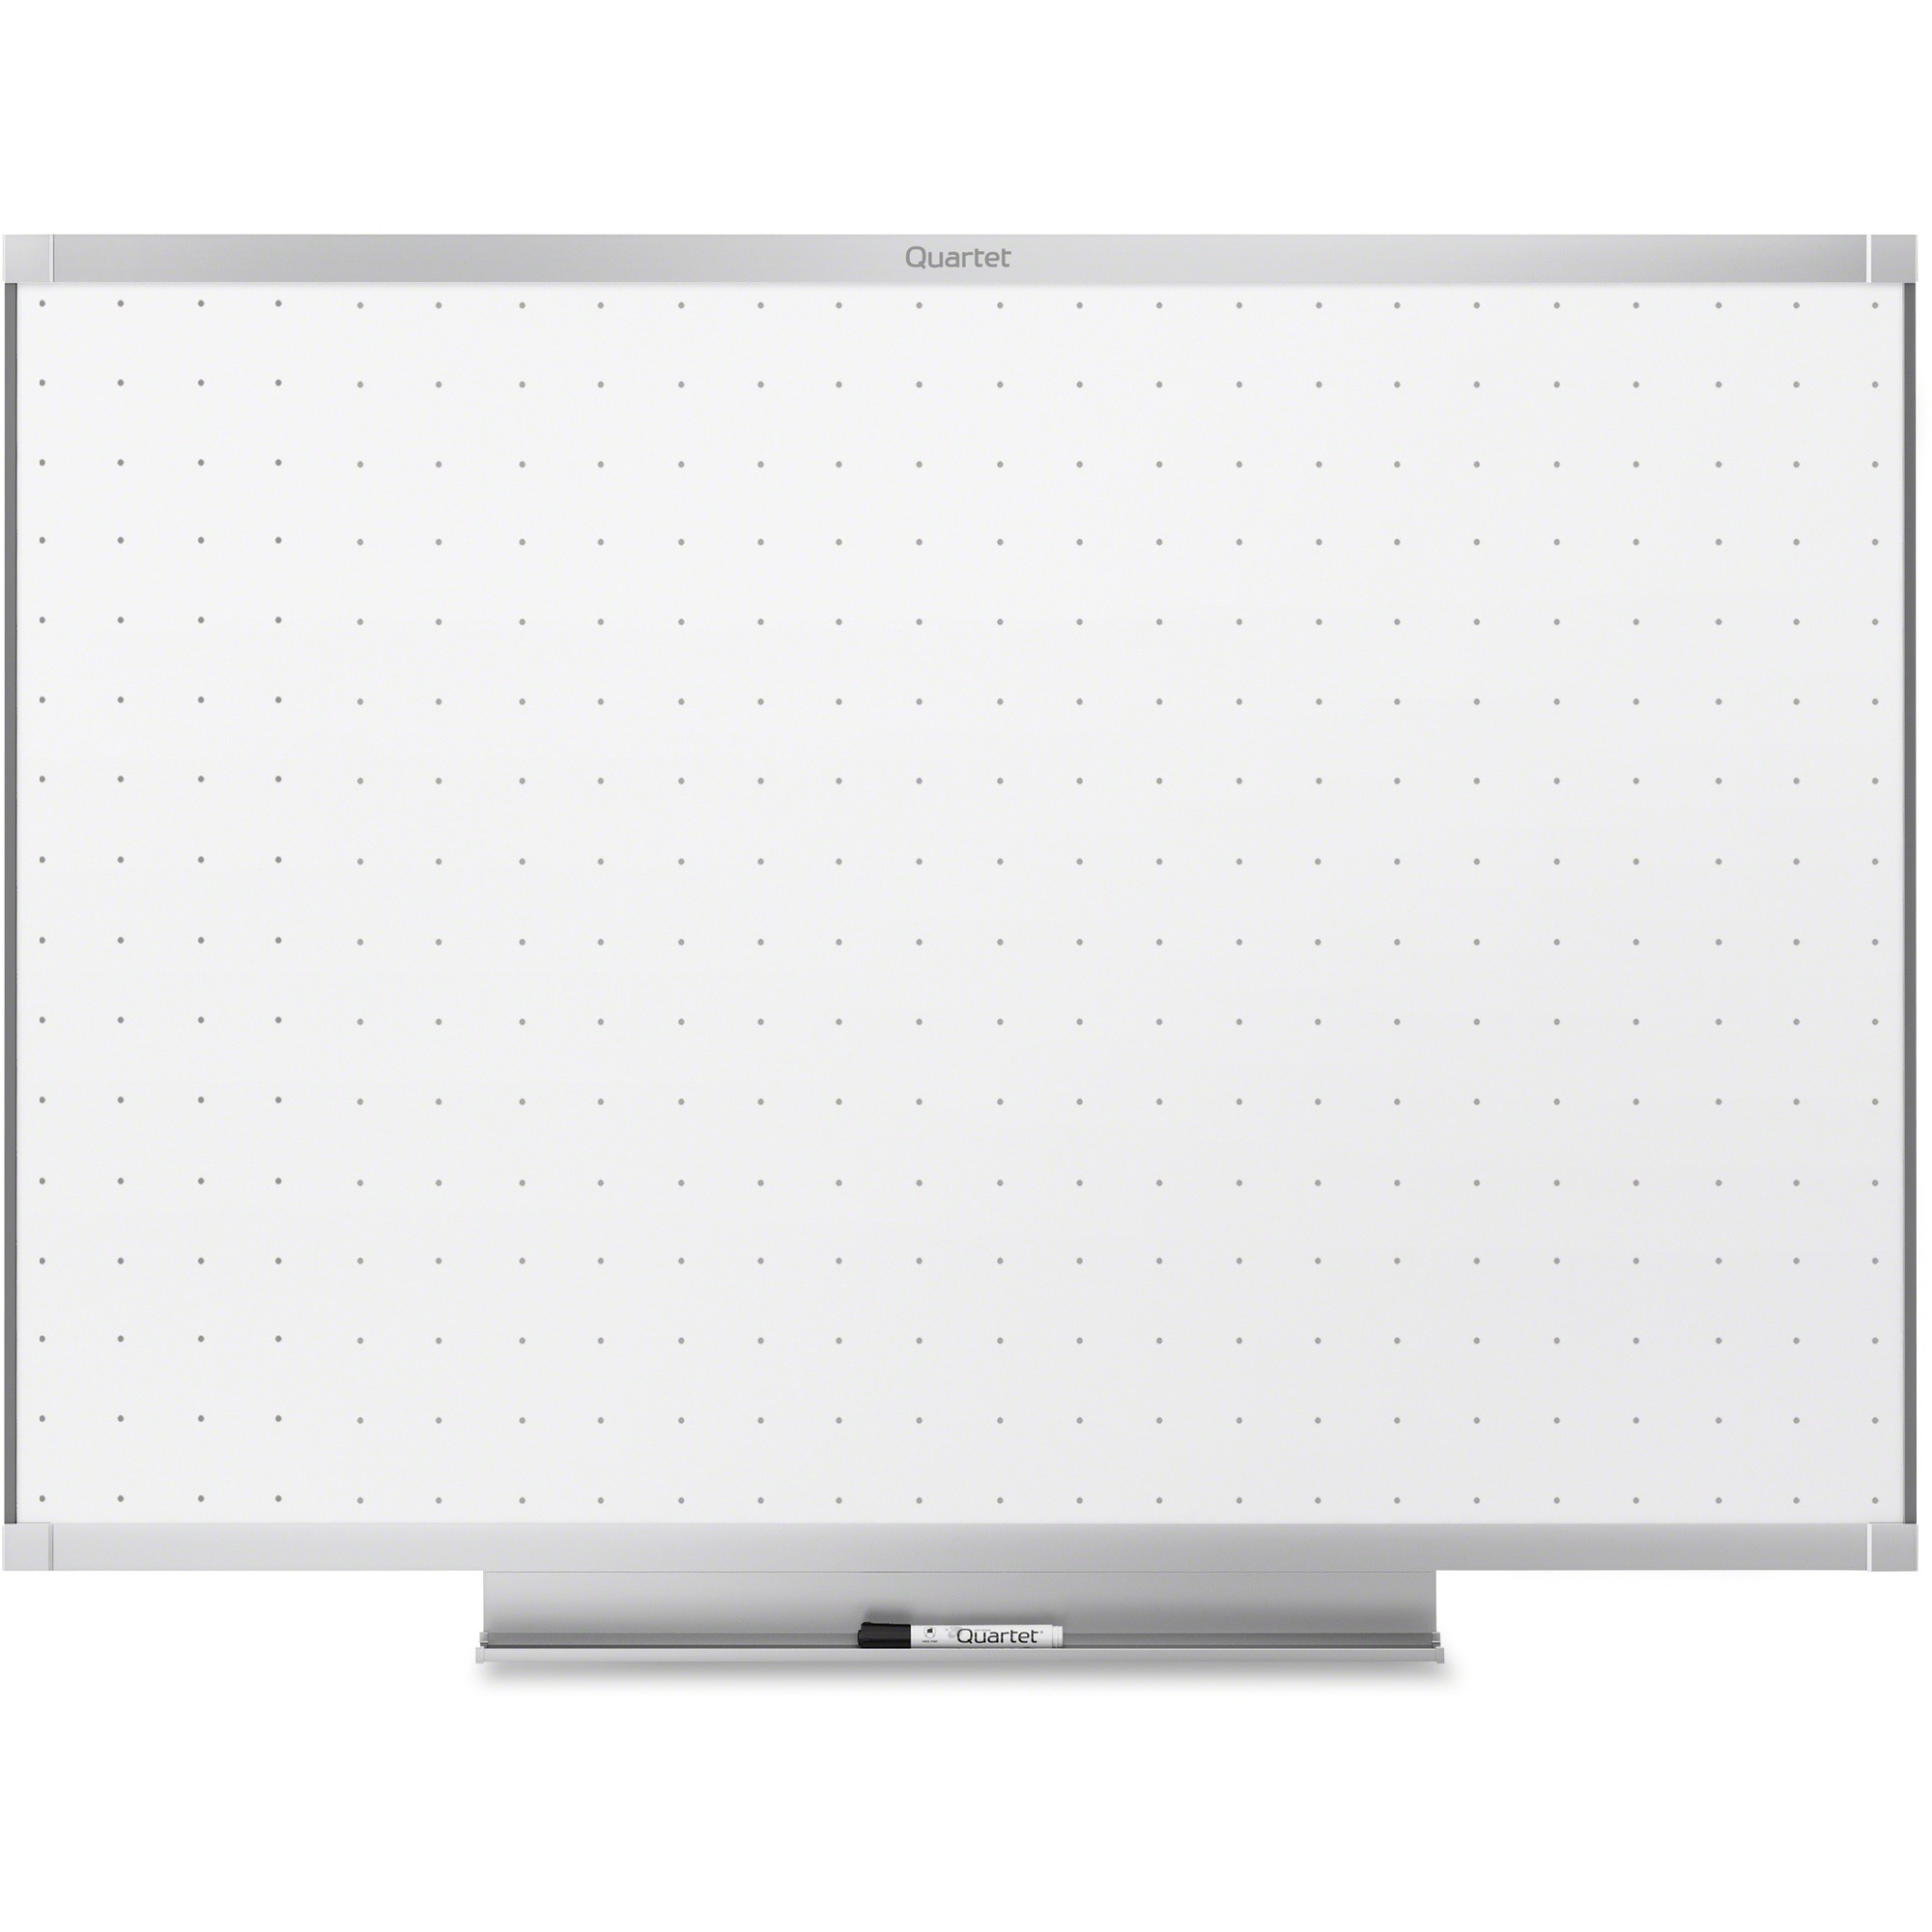 Acco Brands Corporation Quartet® Prestige® 2 Total Erase®whiteboard, 4 X 3, Graphite Finish Frame - 48 (4 Ft) Width X 36 (3 Ft) Height - White Surface - Graphite Frame - Horizontal - 1 / Each